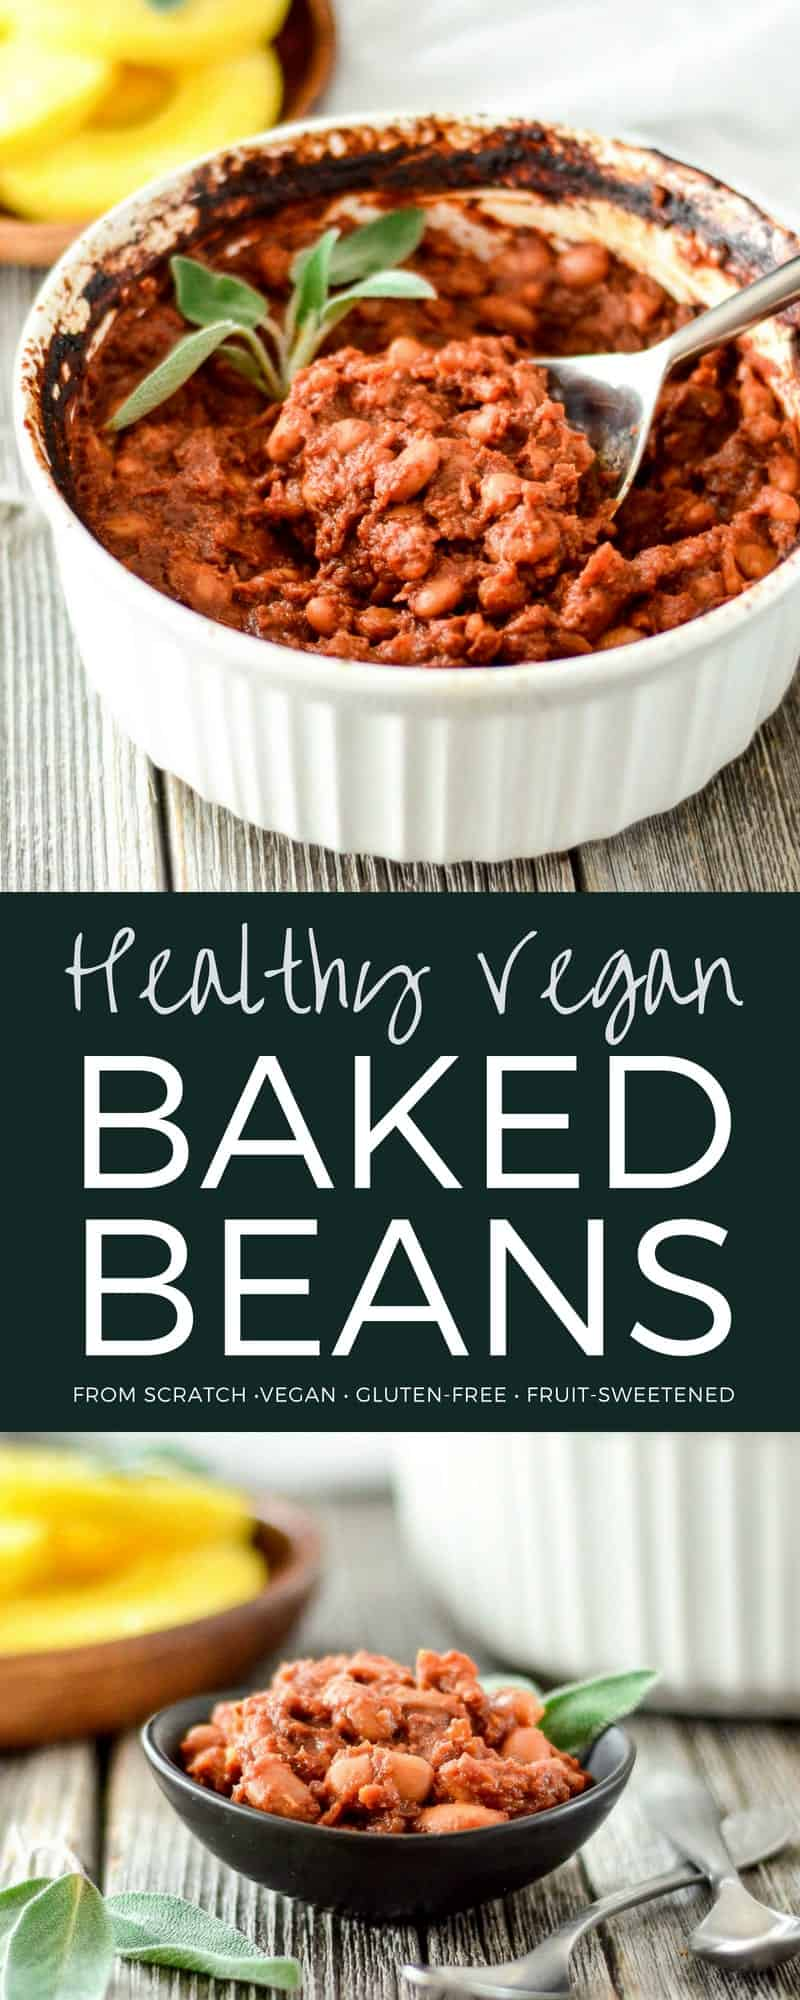 These Healthy Vegan Baked Beans with Pineapple are the perfect side dish for your summer BBQ. They are gluten-free and refined sugar free! Kid friendly and husband approved! #vegan #bakedbeans #healthyrecipe #bbq #side dish